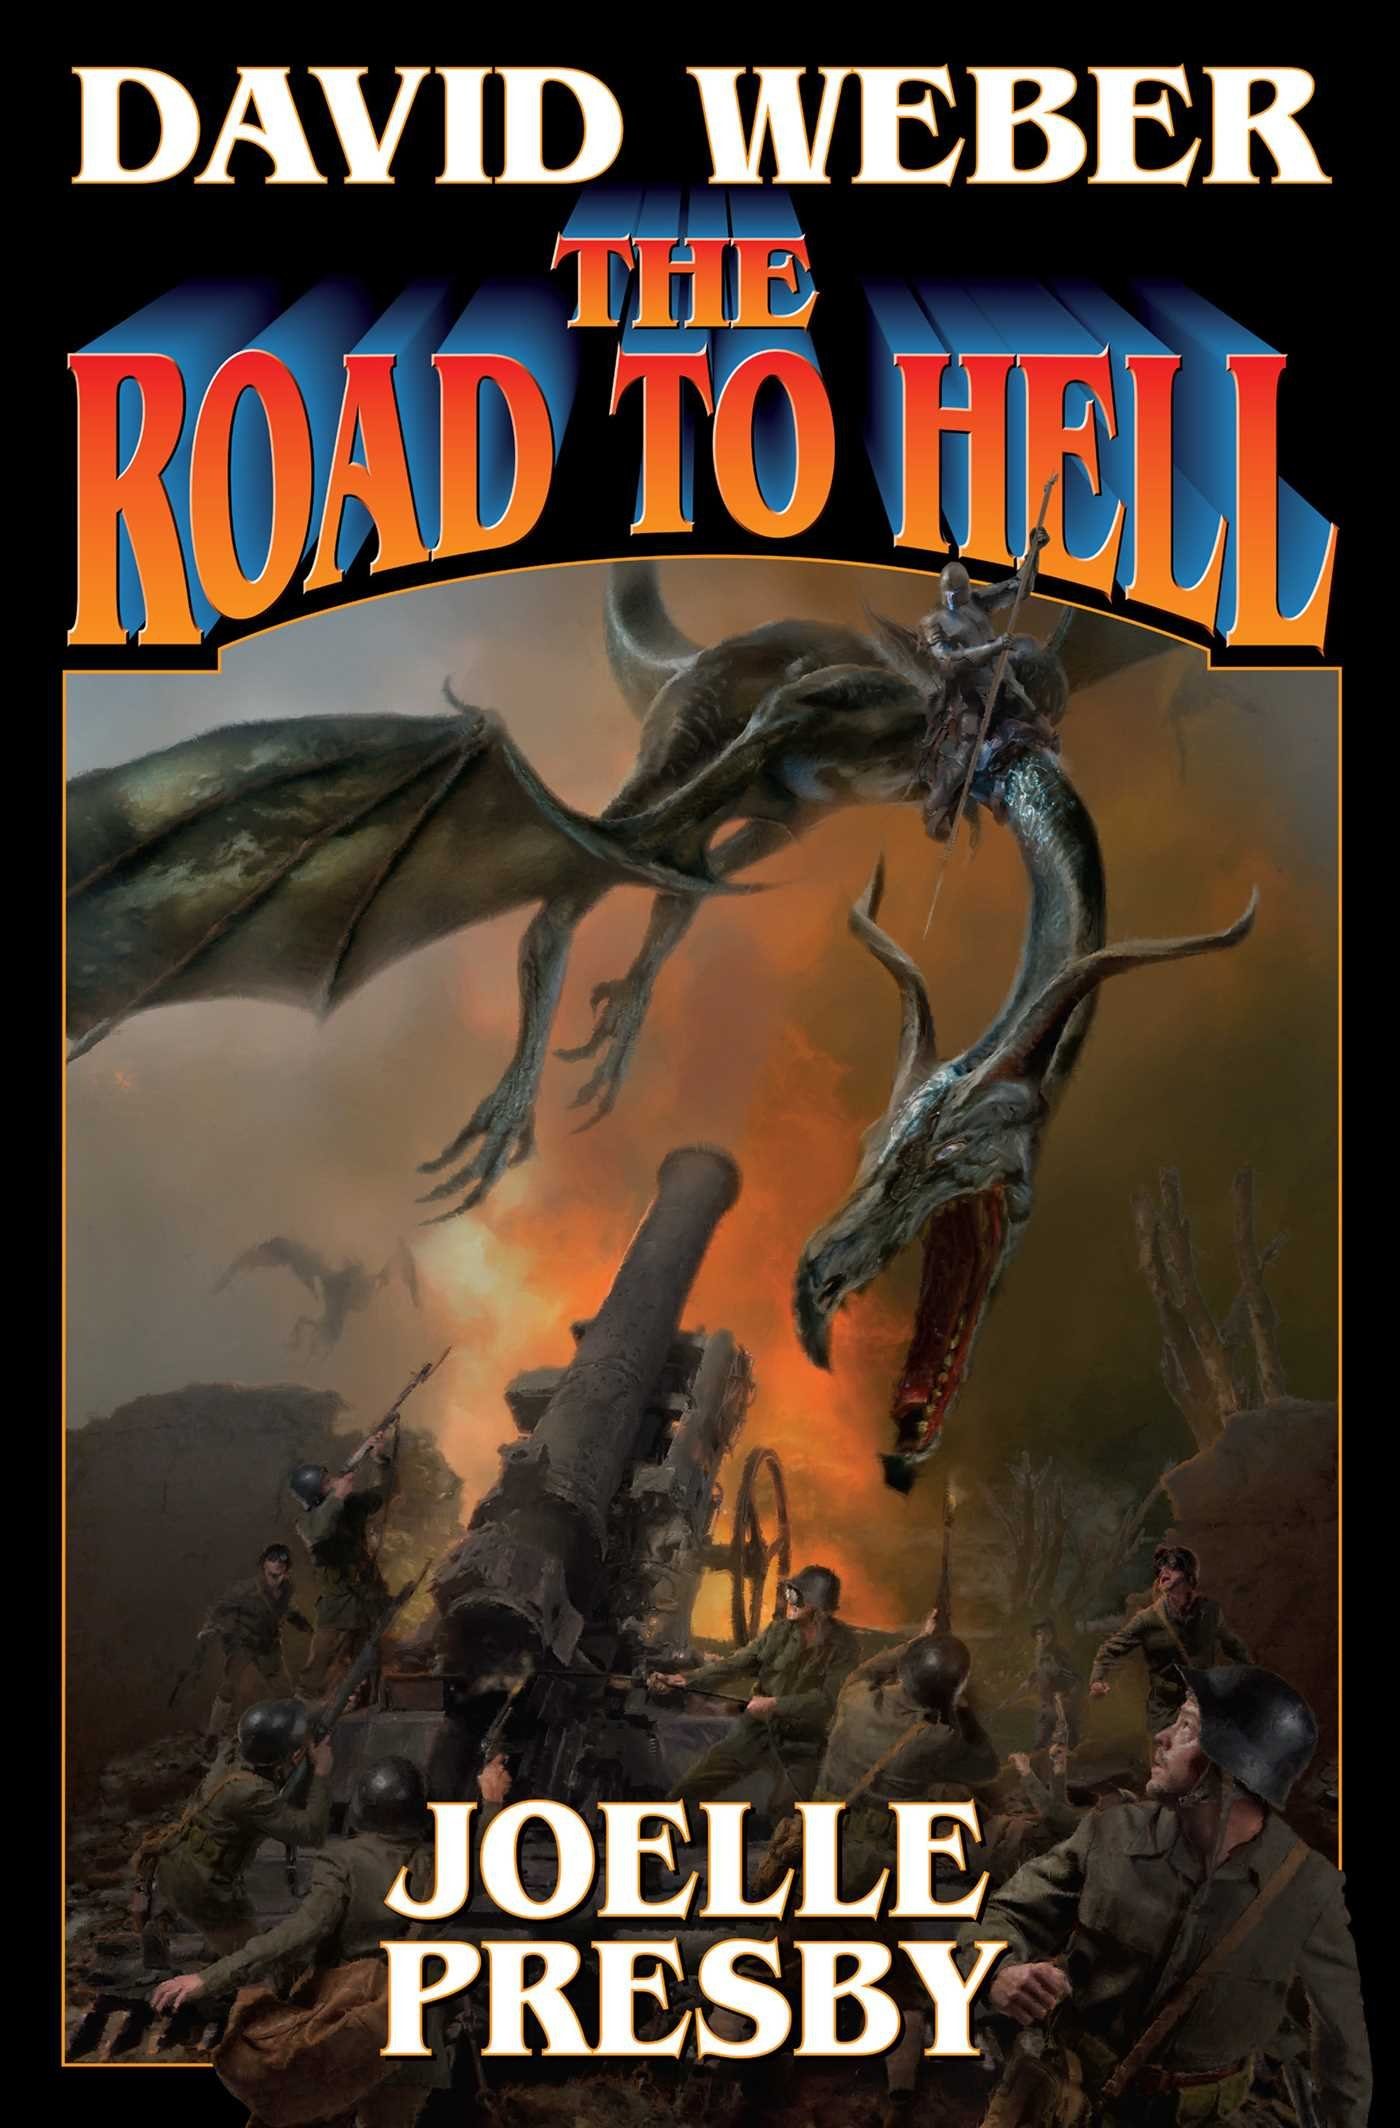 """The Road to Hell"" by David Weber and Joelle Presby."